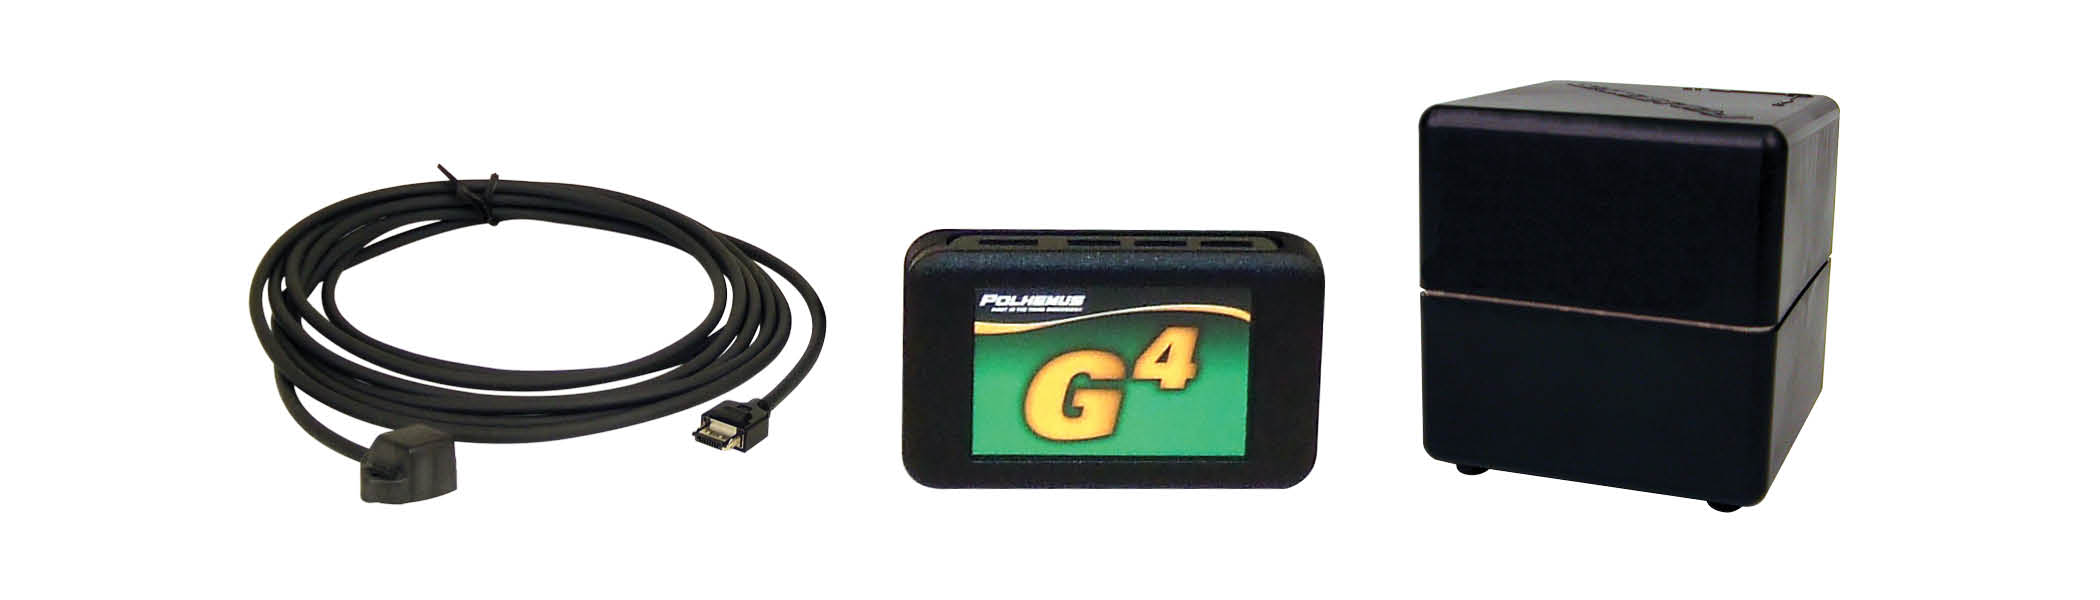 Polhemus G4 wireless motion tracking system